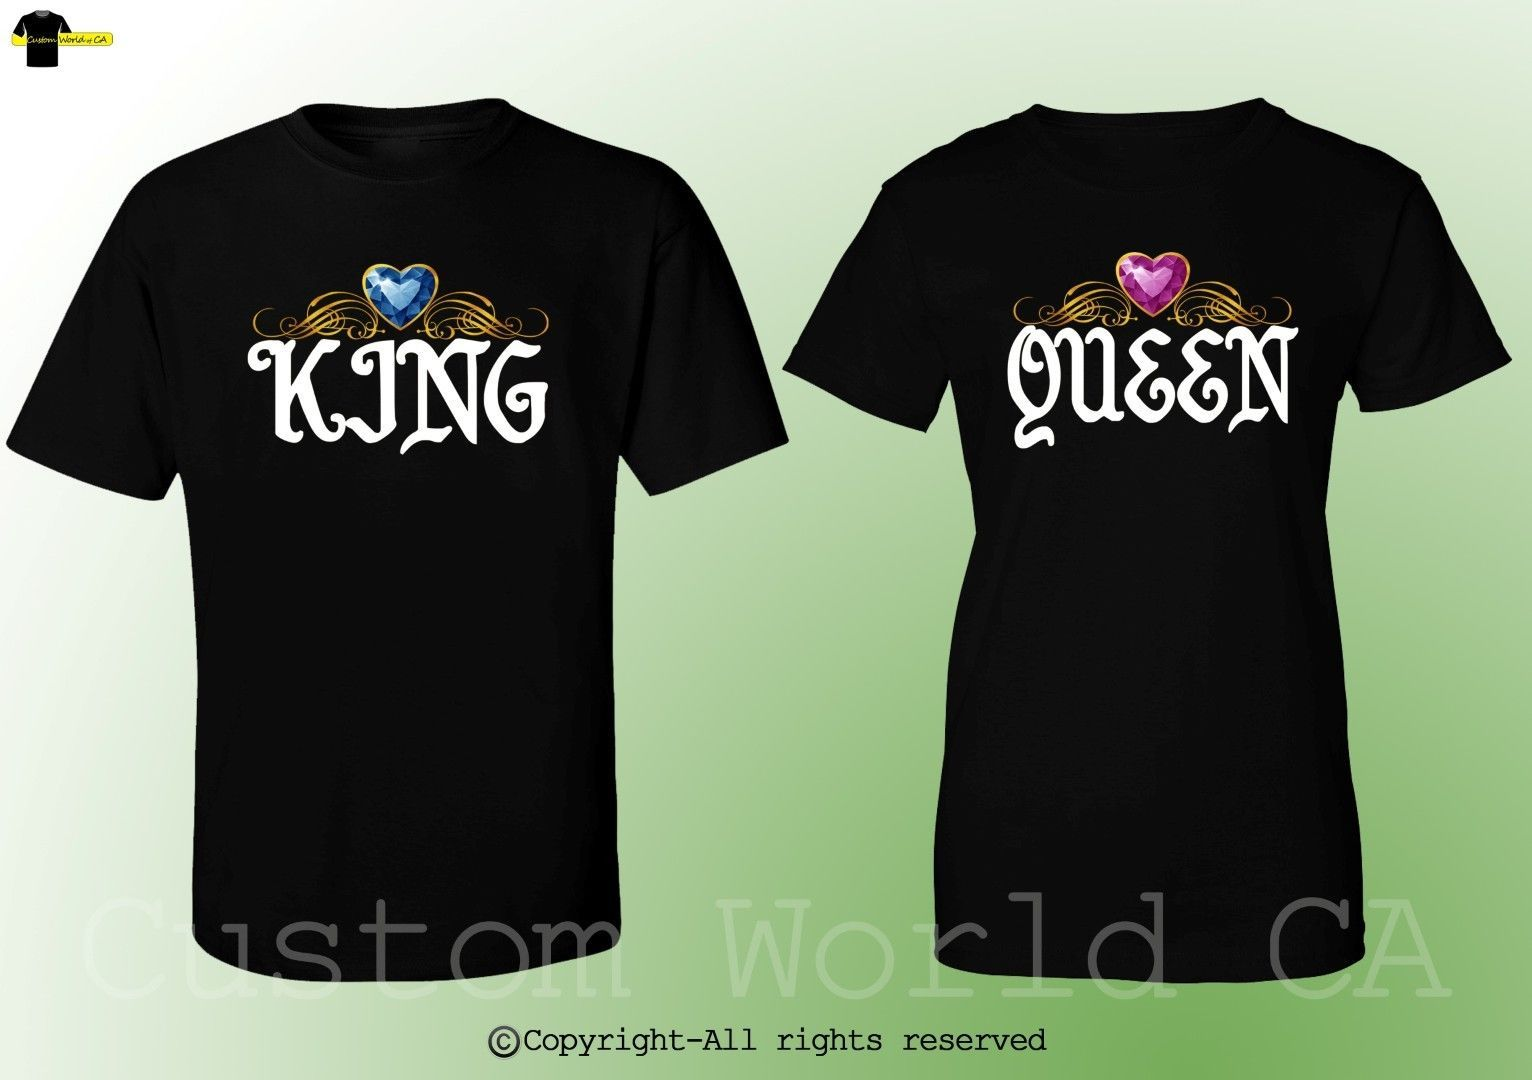 5cfd9ad3b9 King & Queen Design Fashion Couple Shirts BF GF His and Hers Match Tee  Clothes | eBay